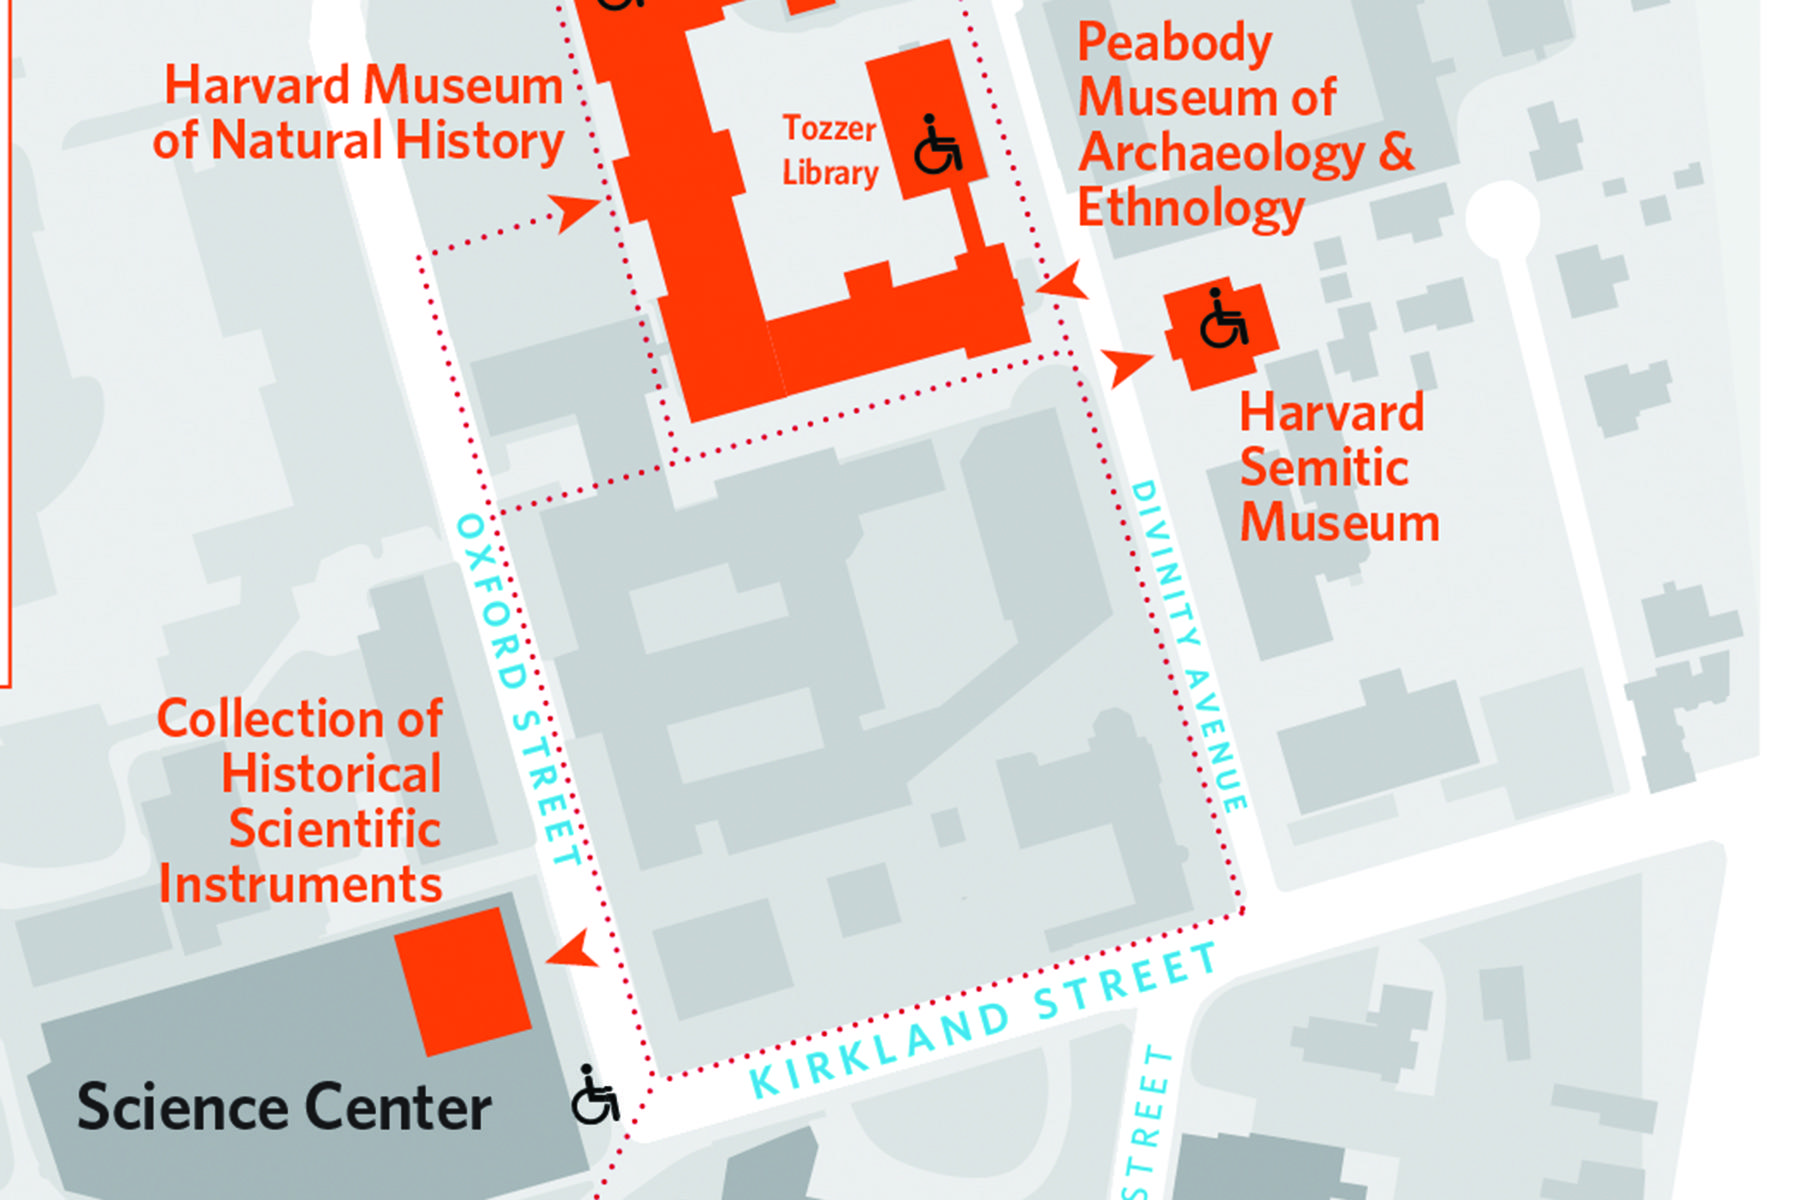 Neighborhood Map for the Harvard Museum of Natural History and sister museums